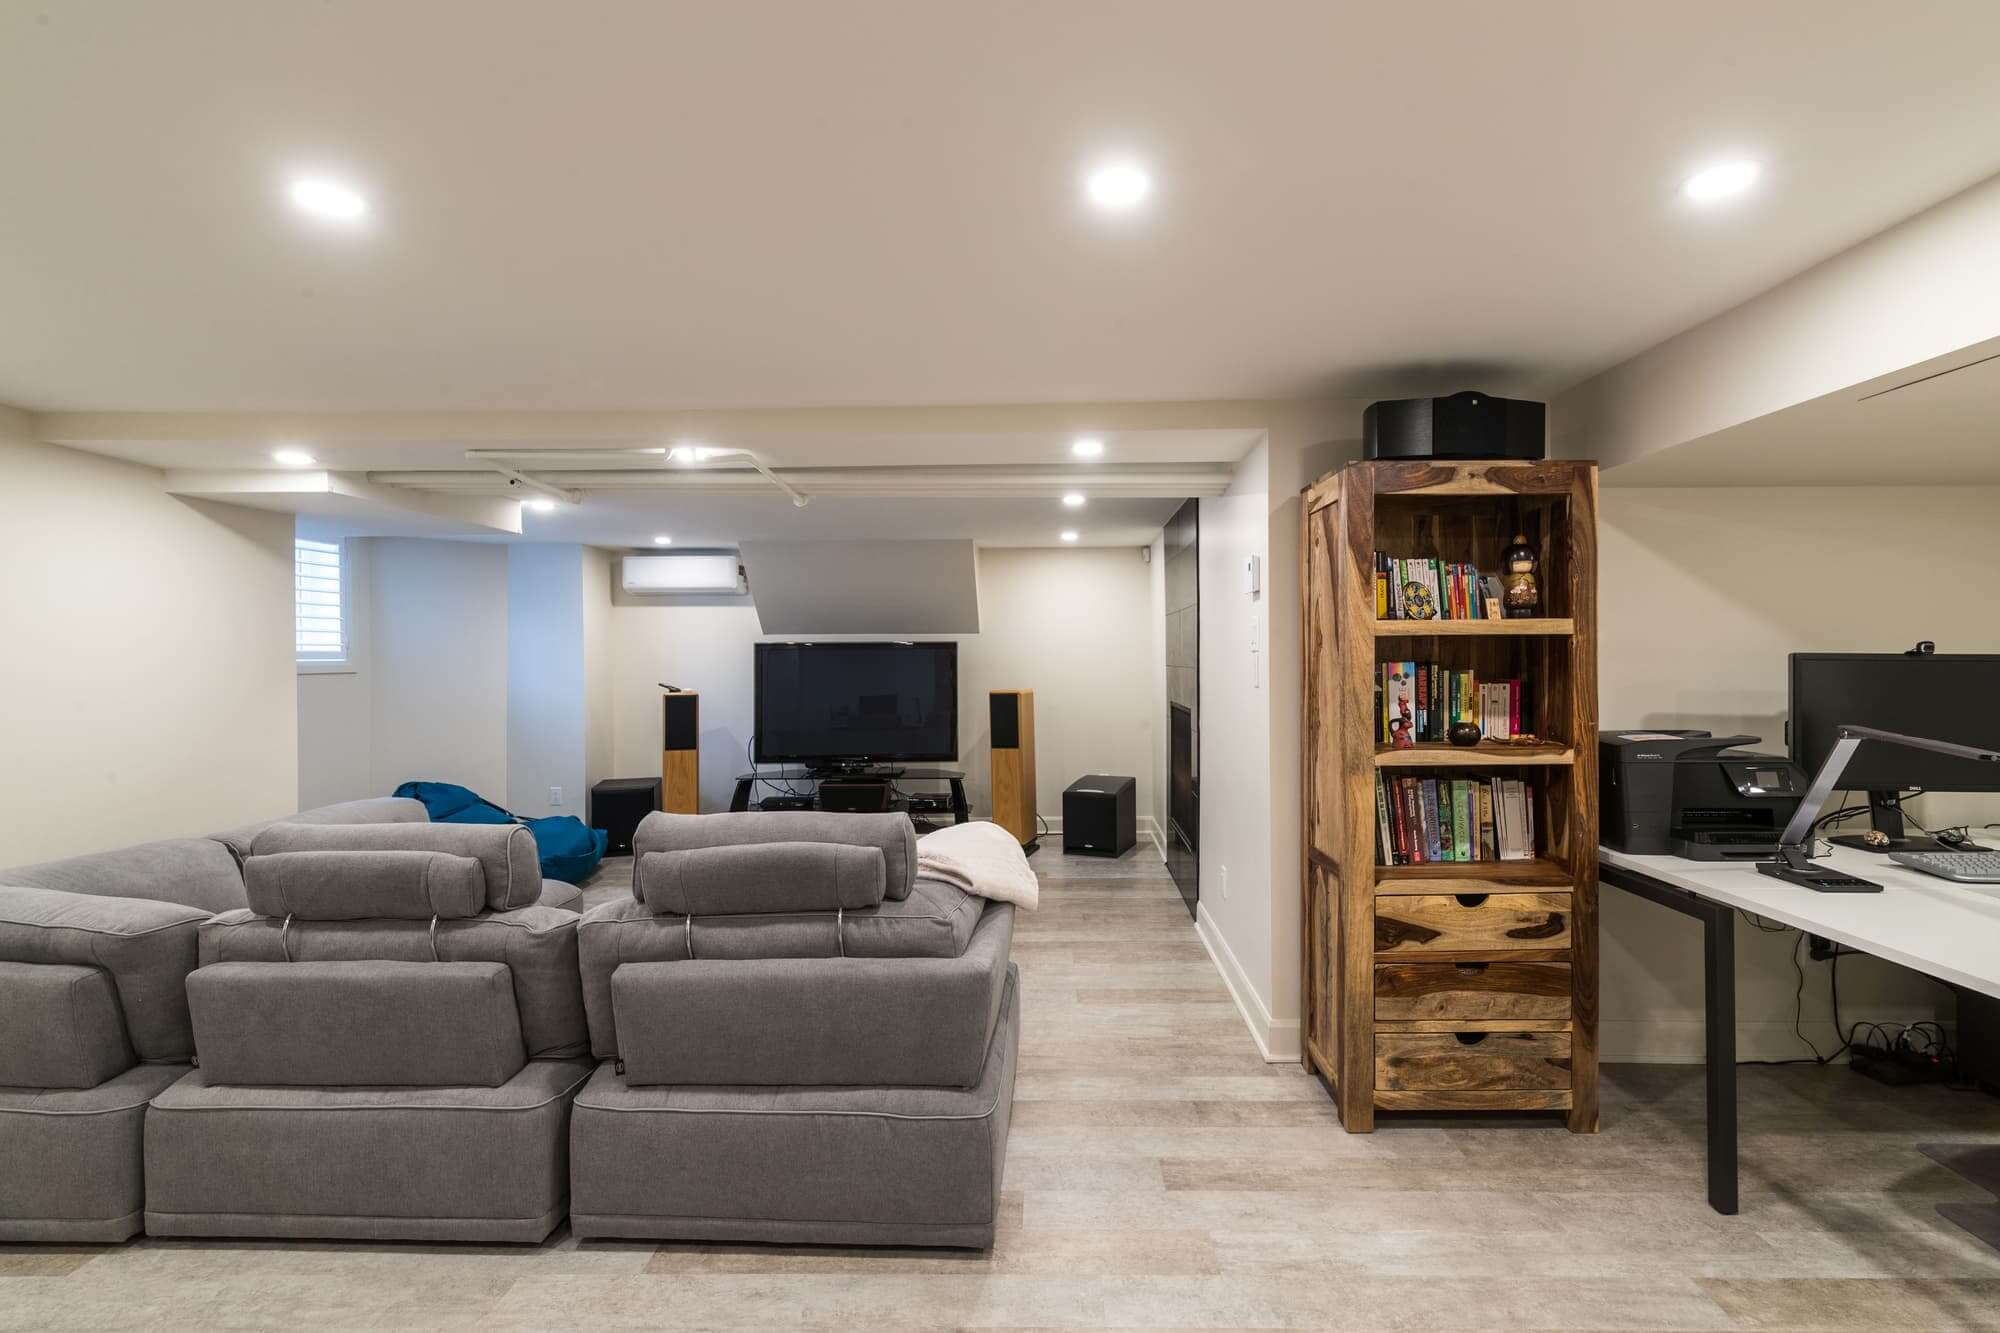 Family room in a basement with fireplace, grey sofa, office area and wooden furniture